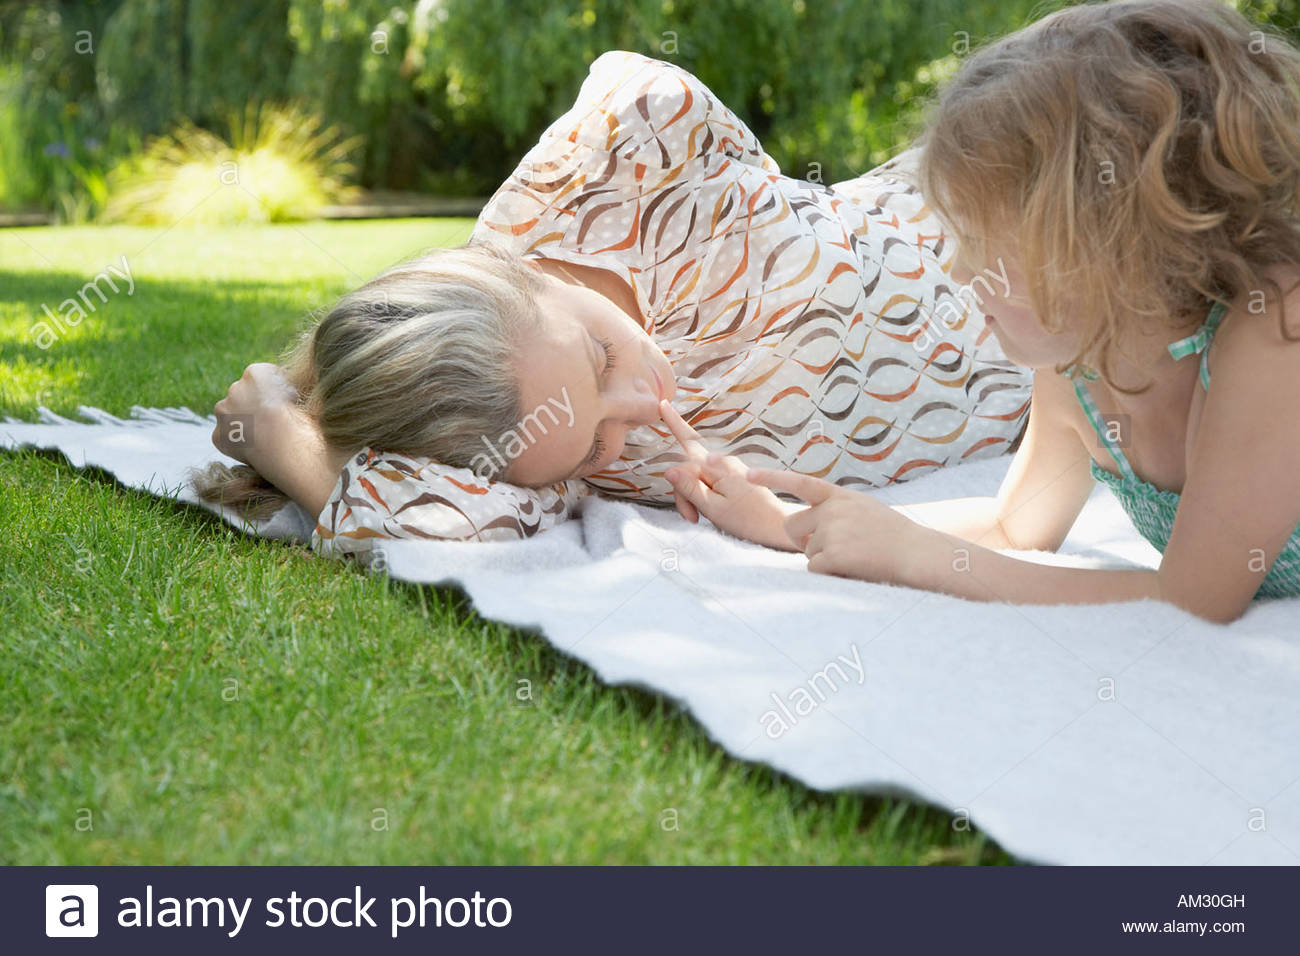 Woman and young girl lying down on blanket outdoors - Stock Image